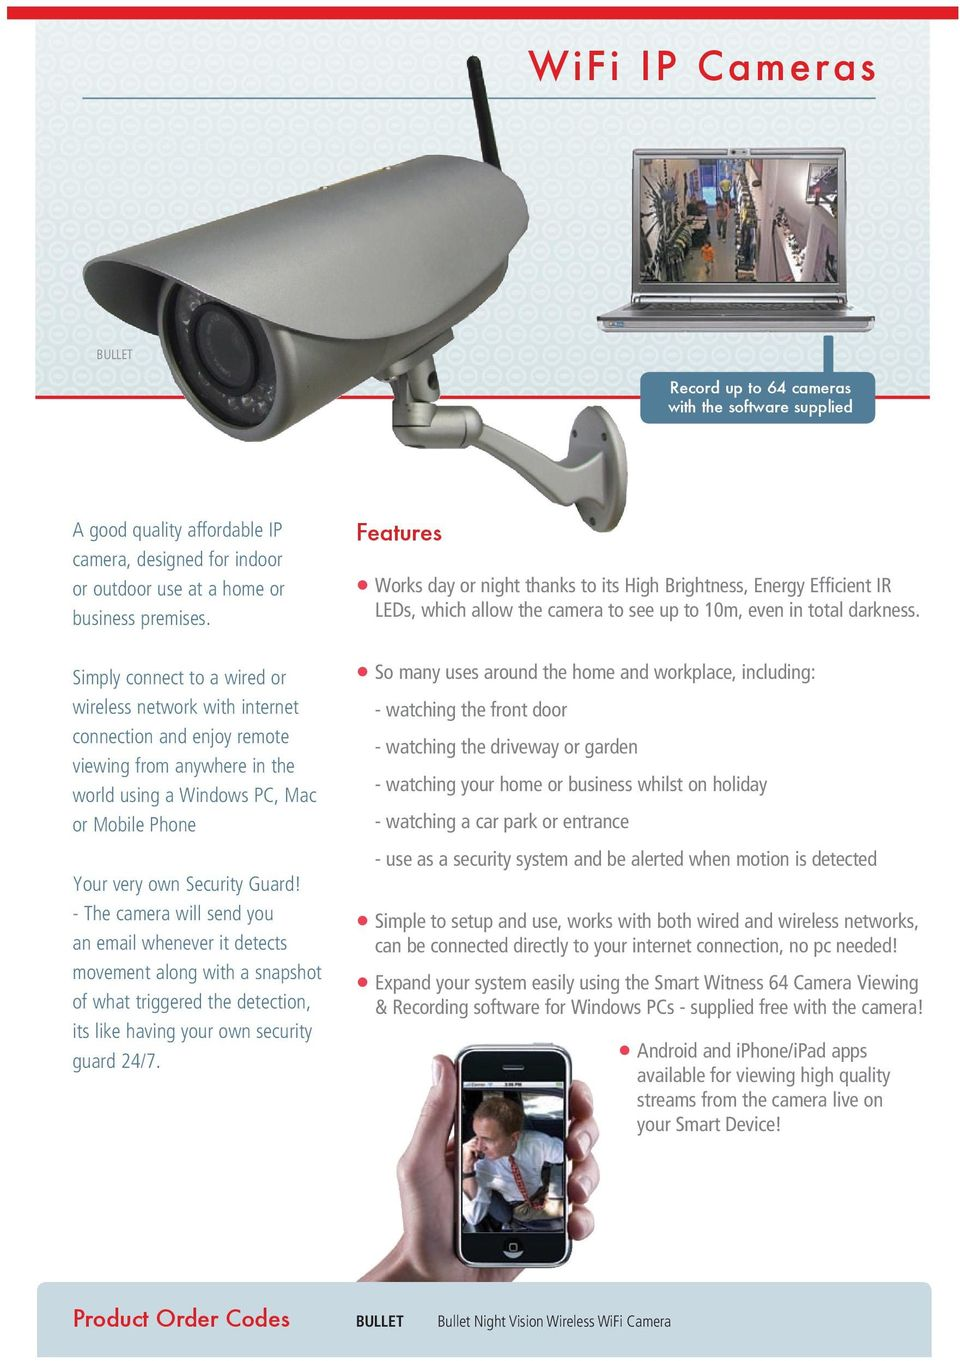 - The camera will send you an email whenever it detects movement along with a snapshot of what triggered the detection, its like having your own security guard 24/7.